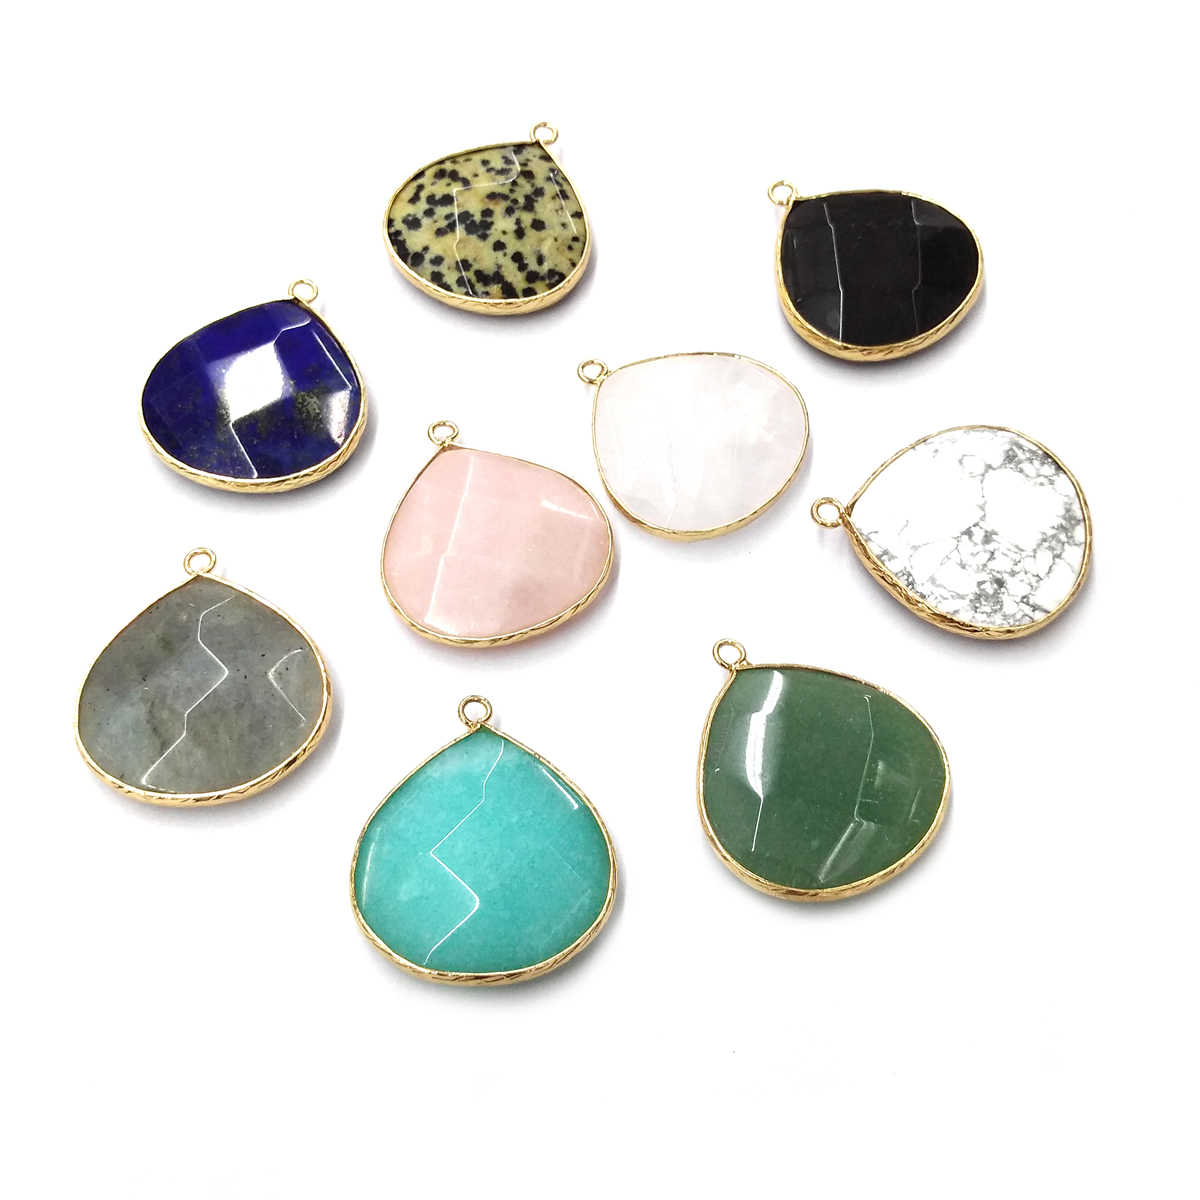 Natural Stone Agates Pendant Charms Pendants for Jewelry Making DIY Necklace Size 29x33mm